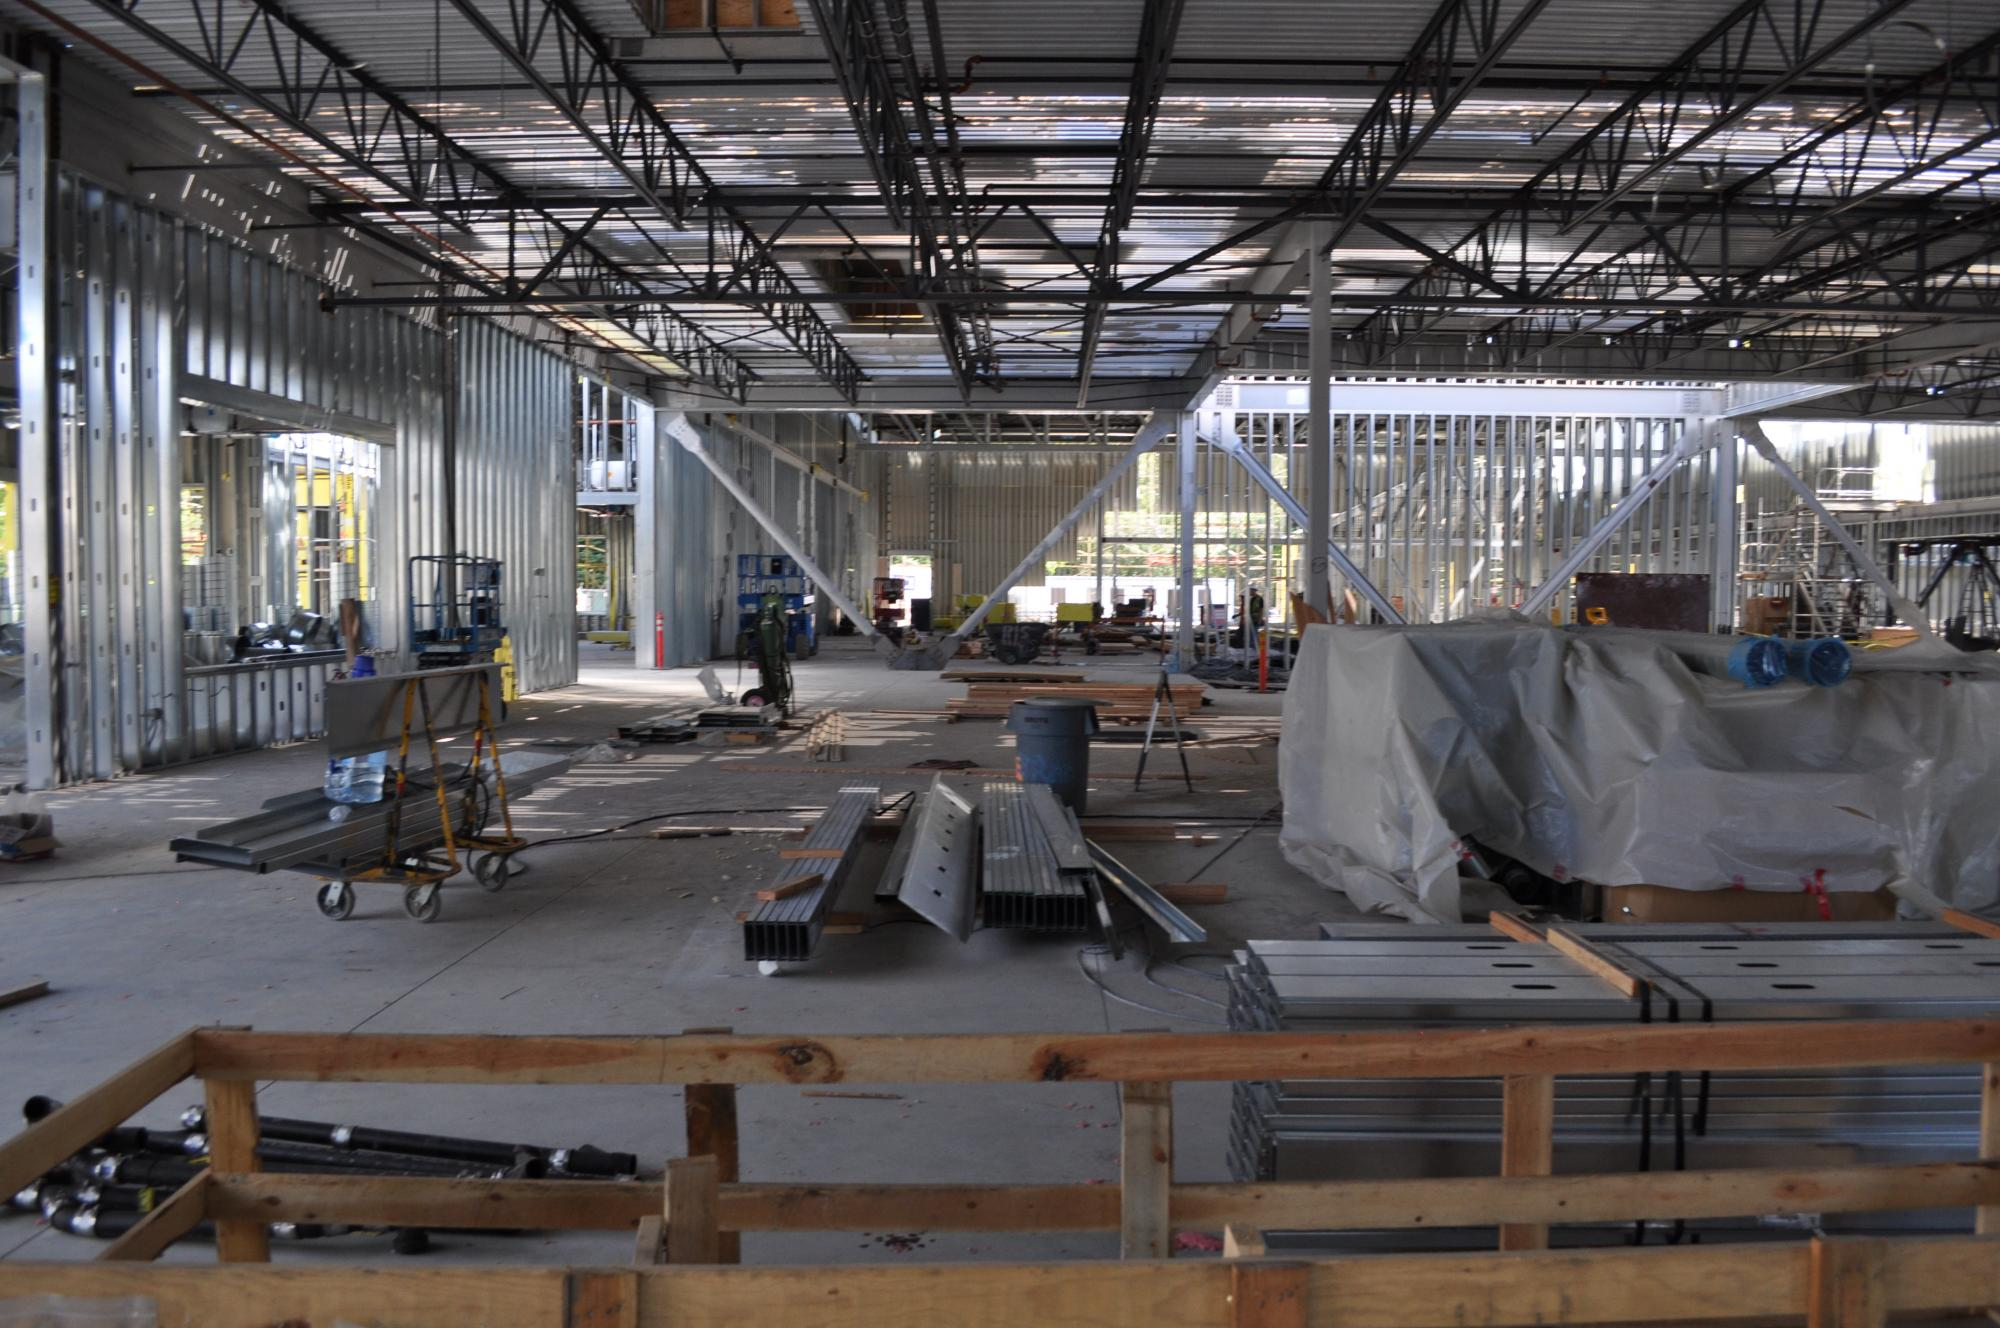 Lobby looking towards courts as of 6/9/14